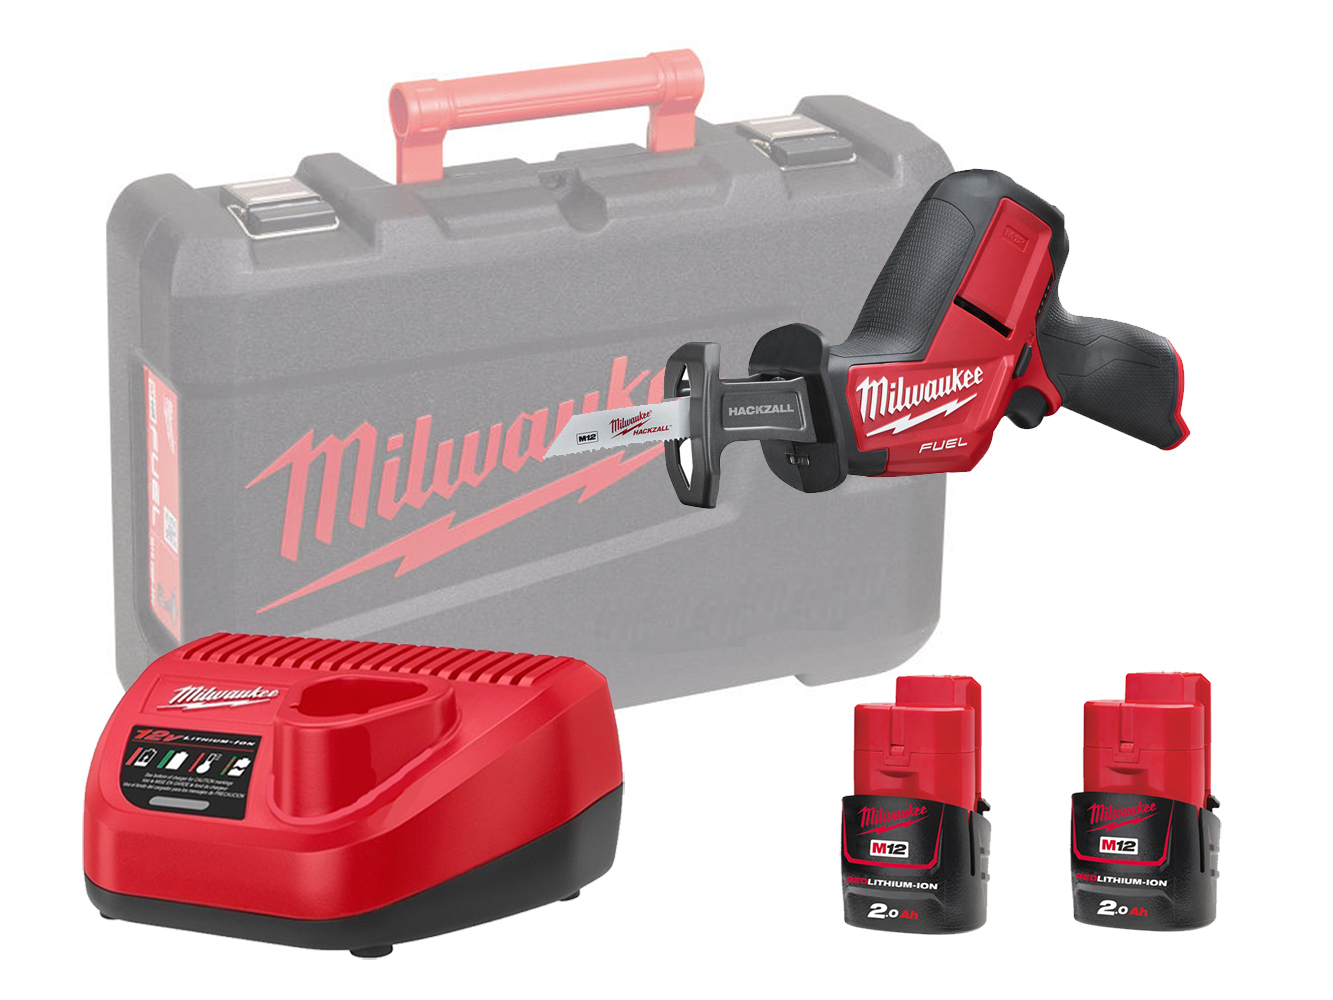 Milwaukee M12CHZ 12V FUEL Sub Compact Hackzall (Reciprocating Saw) - 2.0ah Pack